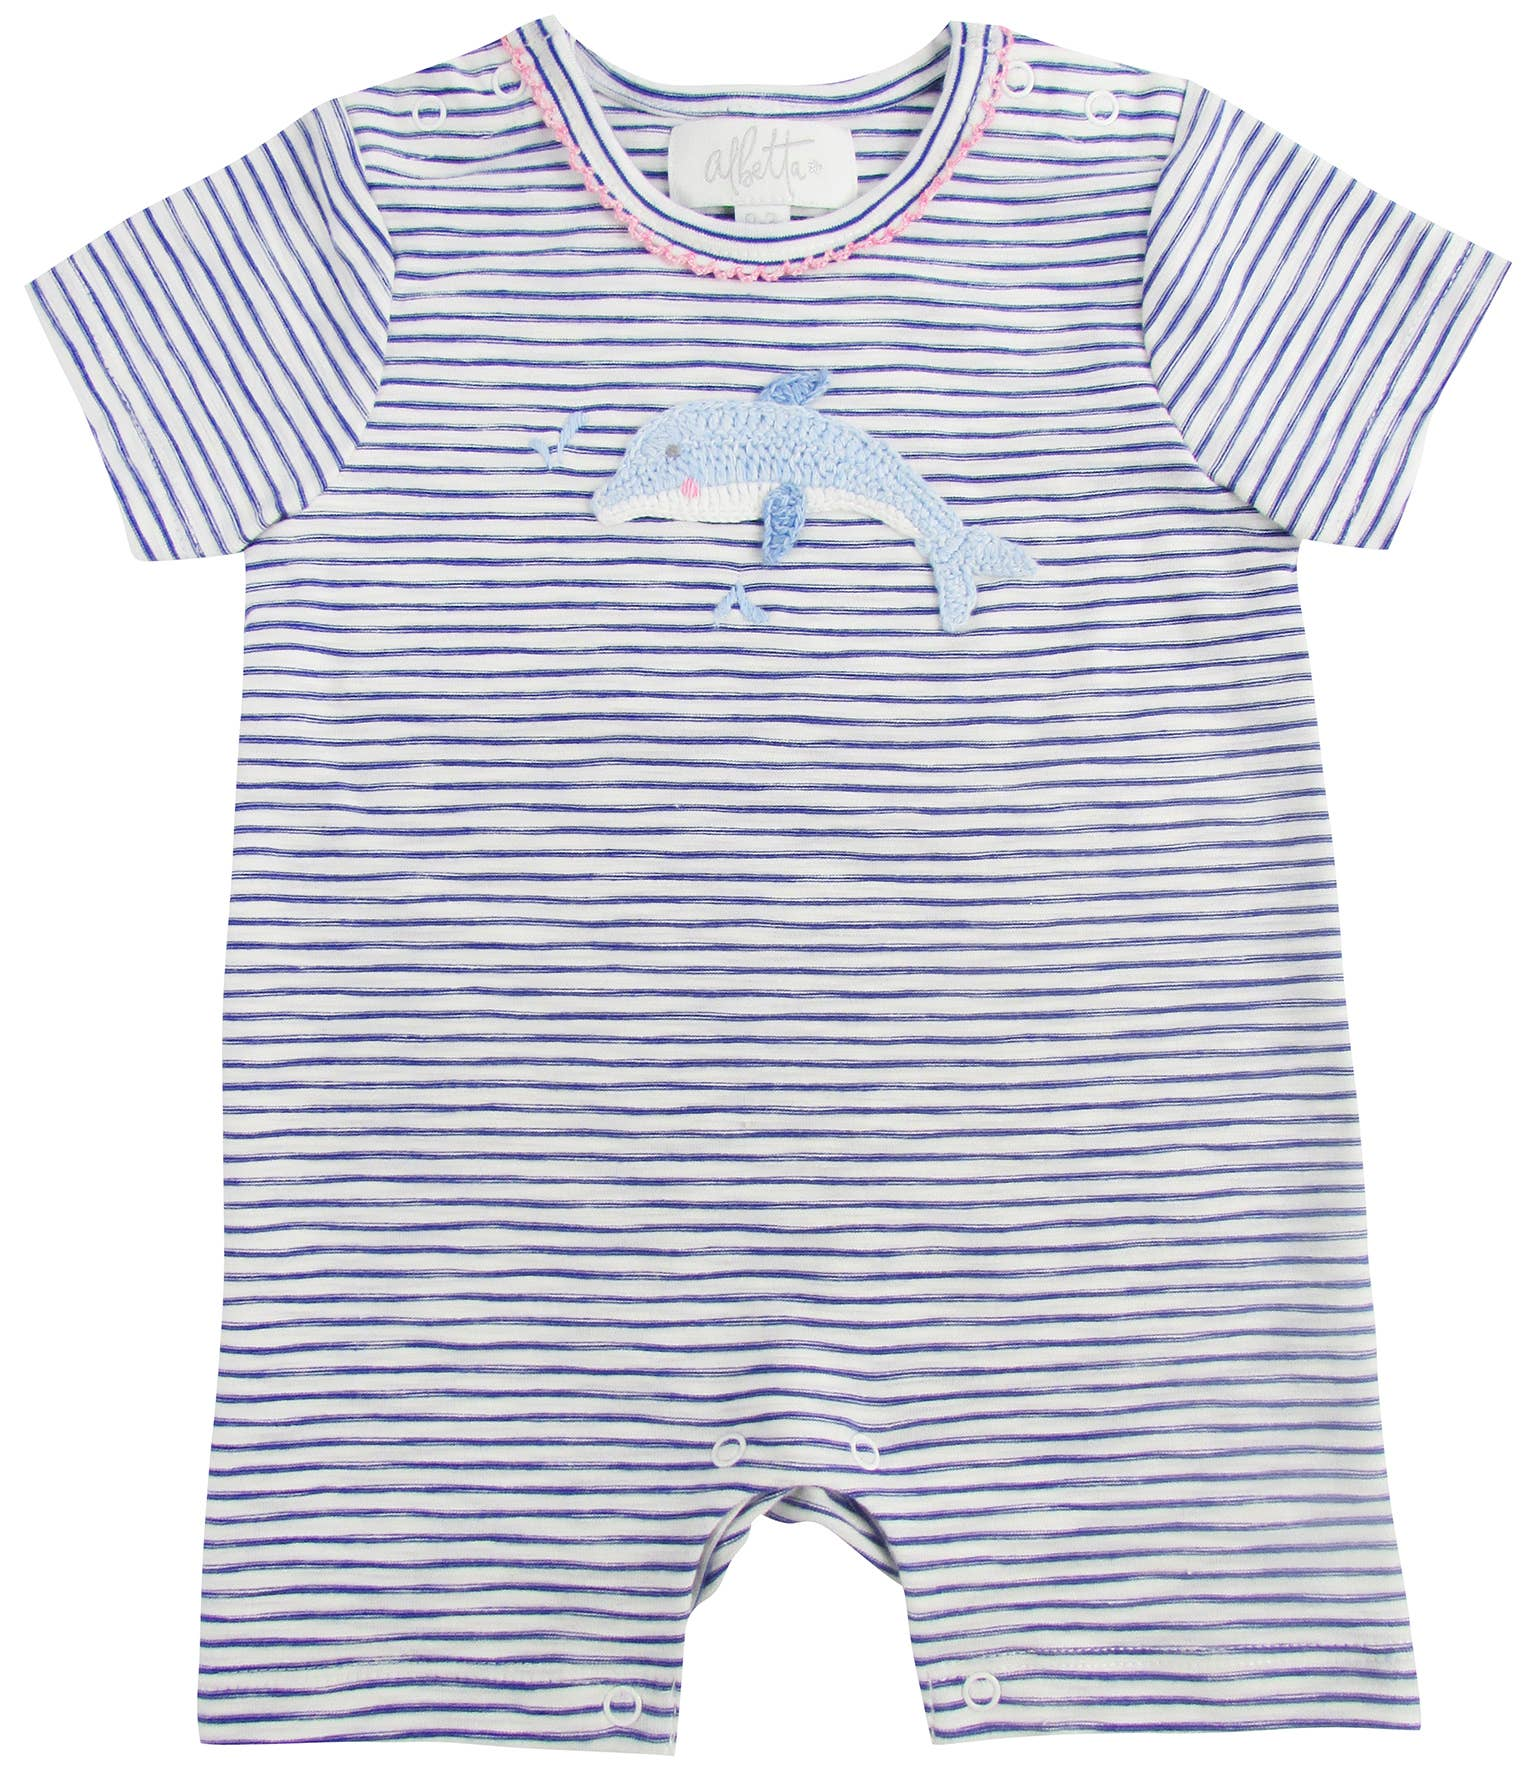 Cool Dolphin Drinking Margarita Baby Boys Or Girls 100/% Organic Cotton Jumpsuit Outfit 0-2T